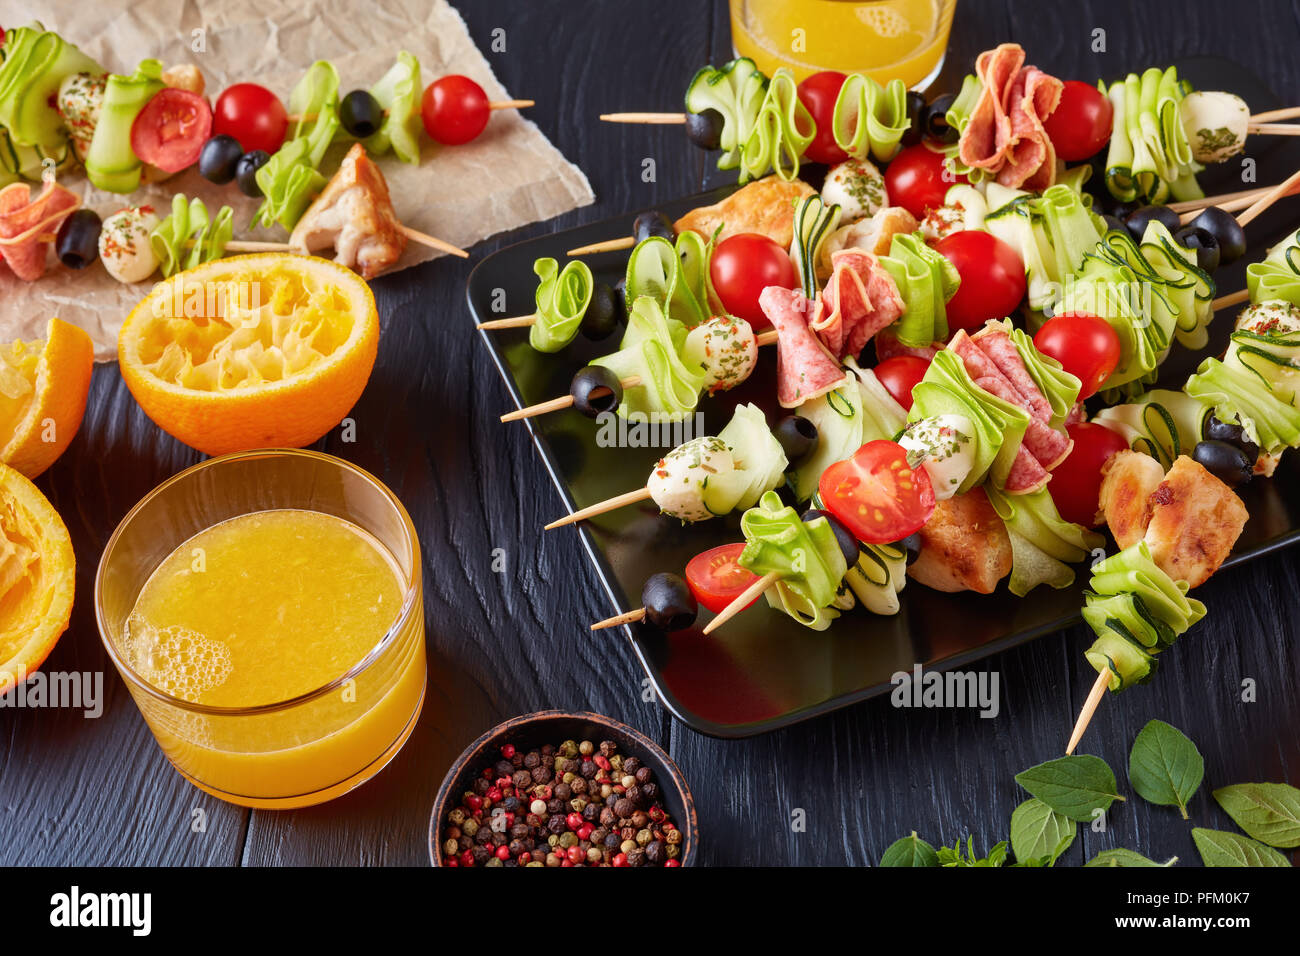 antipasto skewers with chicken meat, zucchini, tomatoes, mozzarella balls, salami slices, olives on a black plate on a wooden table with orange juice  - Stock Image